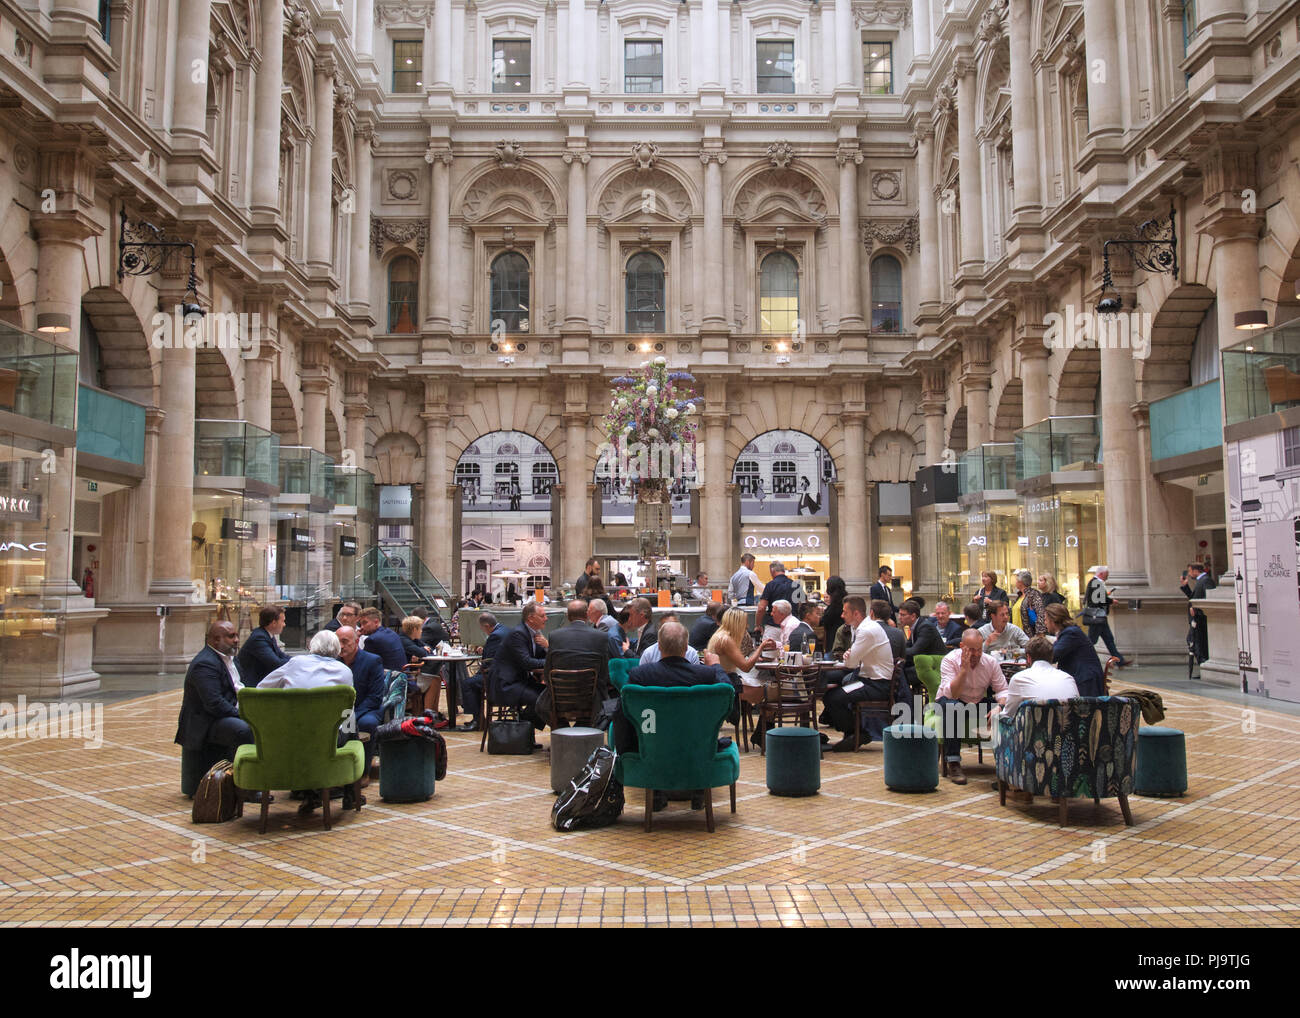 People in the cafe of the Royal Exchange, London - Stock Image